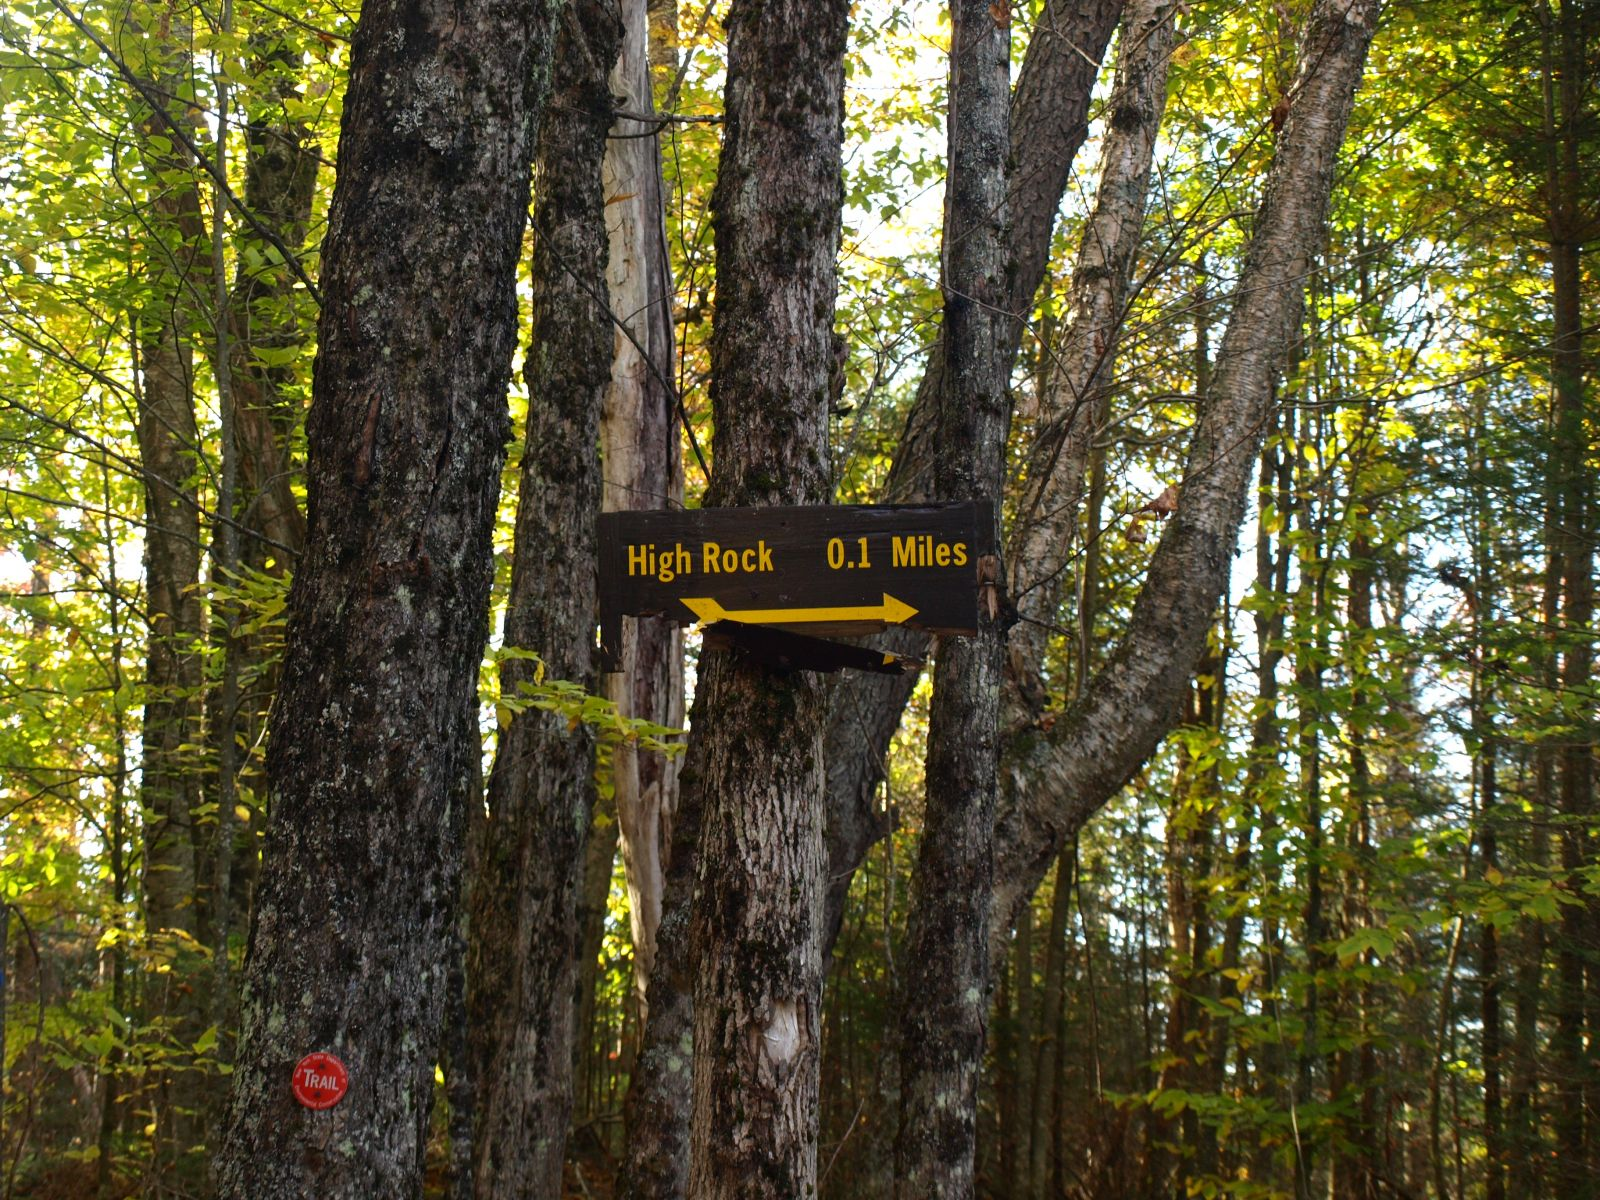 The trail sign for High Rock